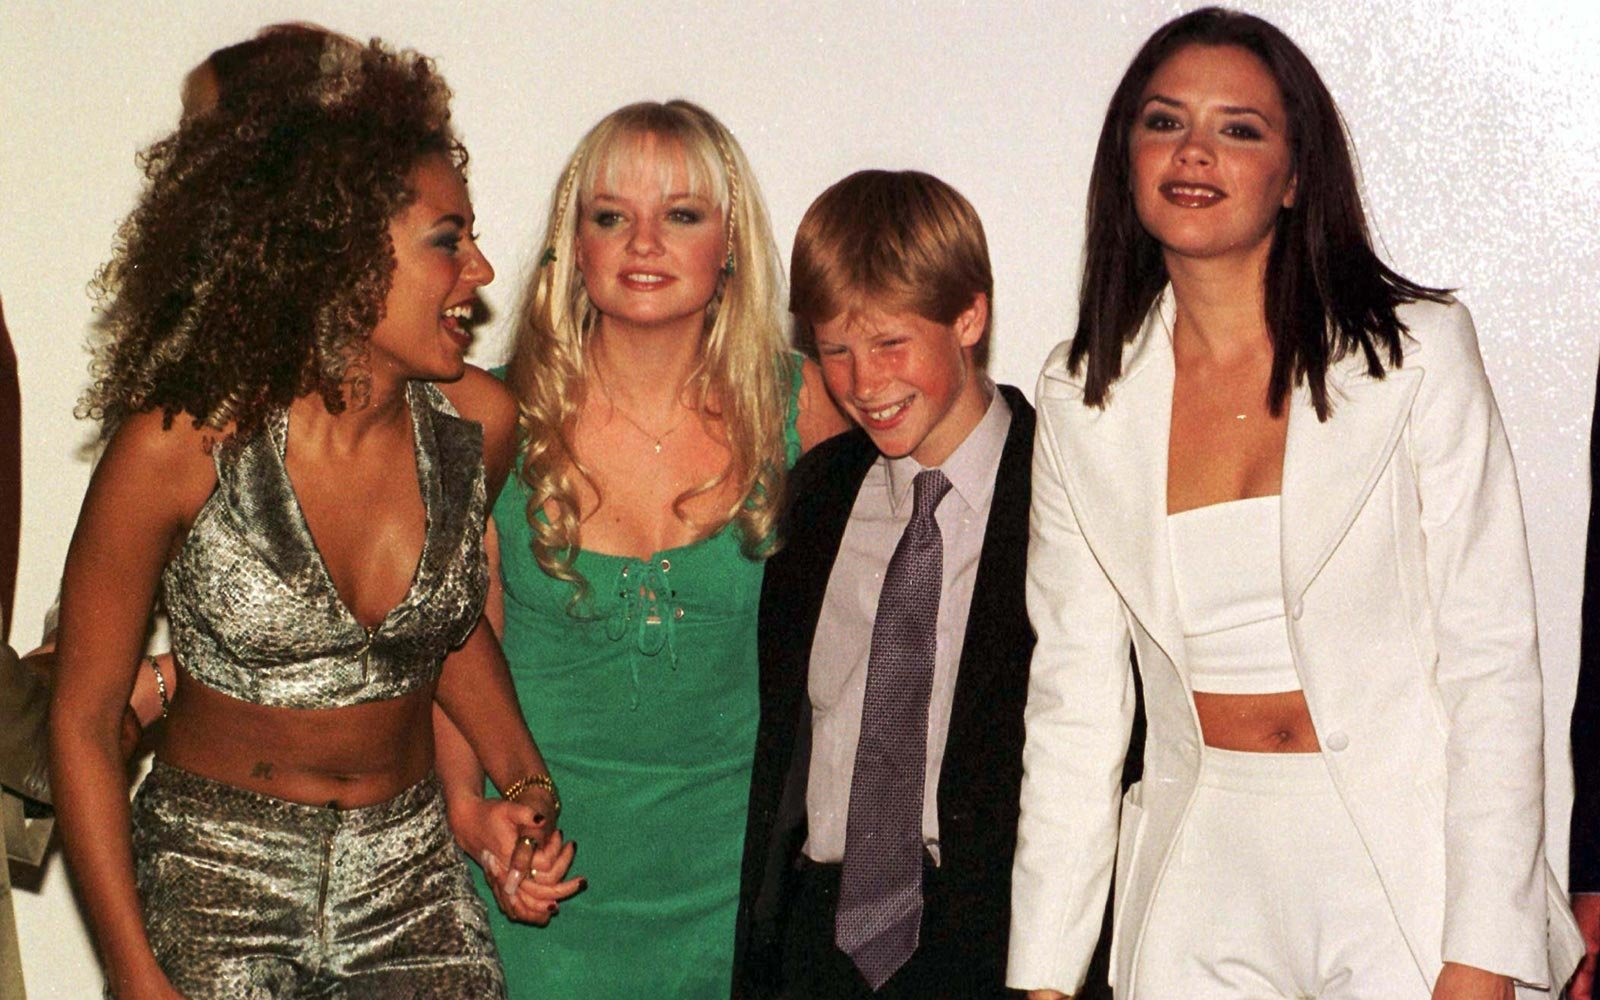 Spice Girls may perform at Meghan Markle and Prince Harry's royal wedding